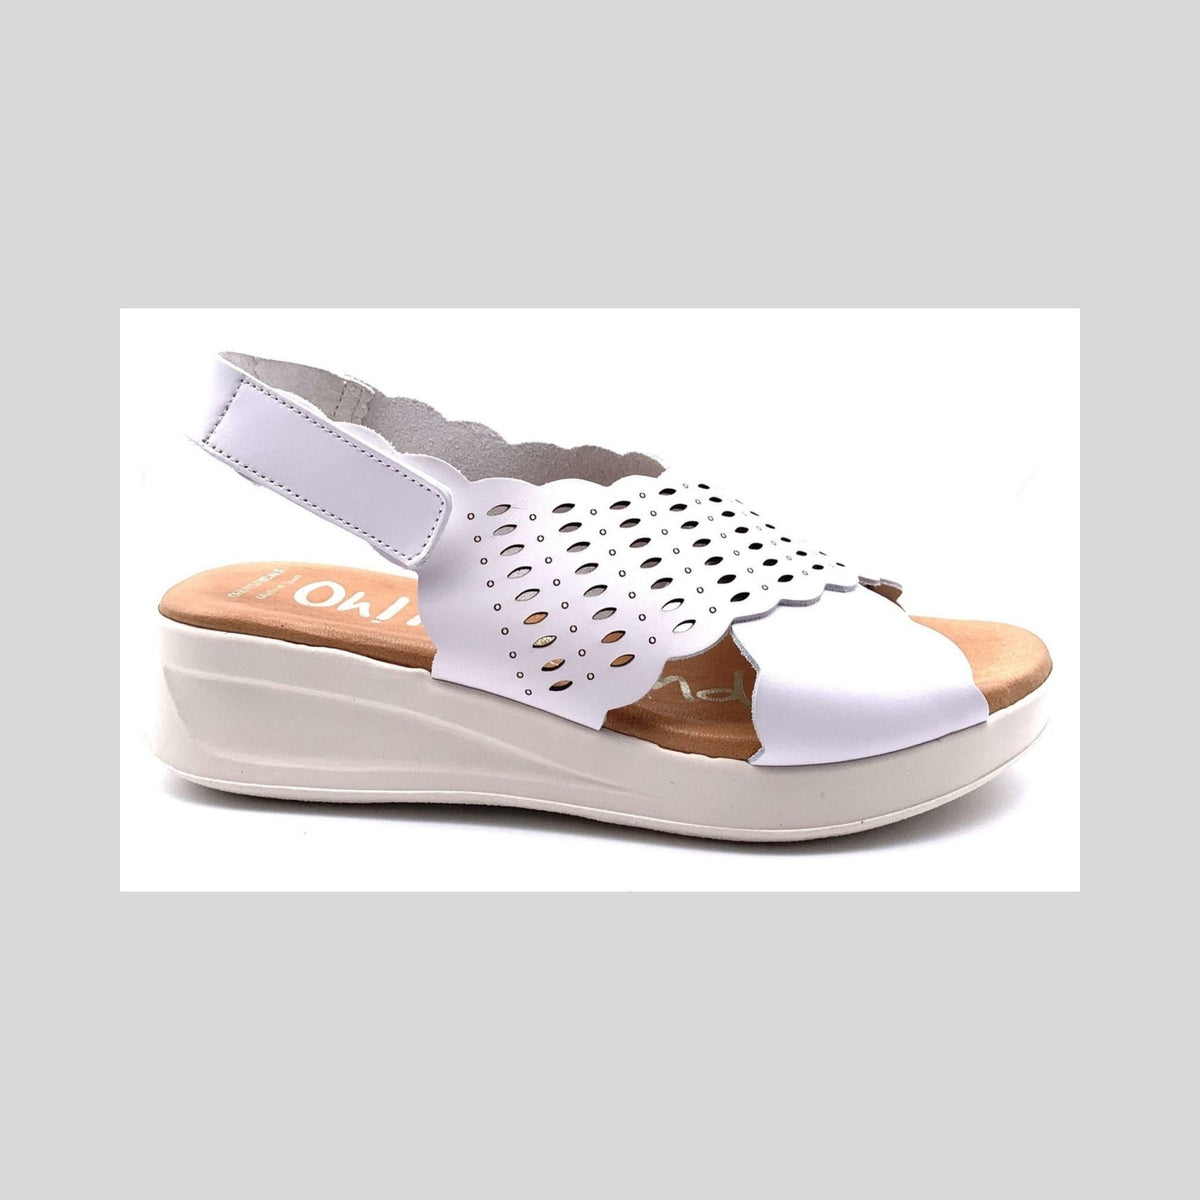 Oh My Sandals 4839 White